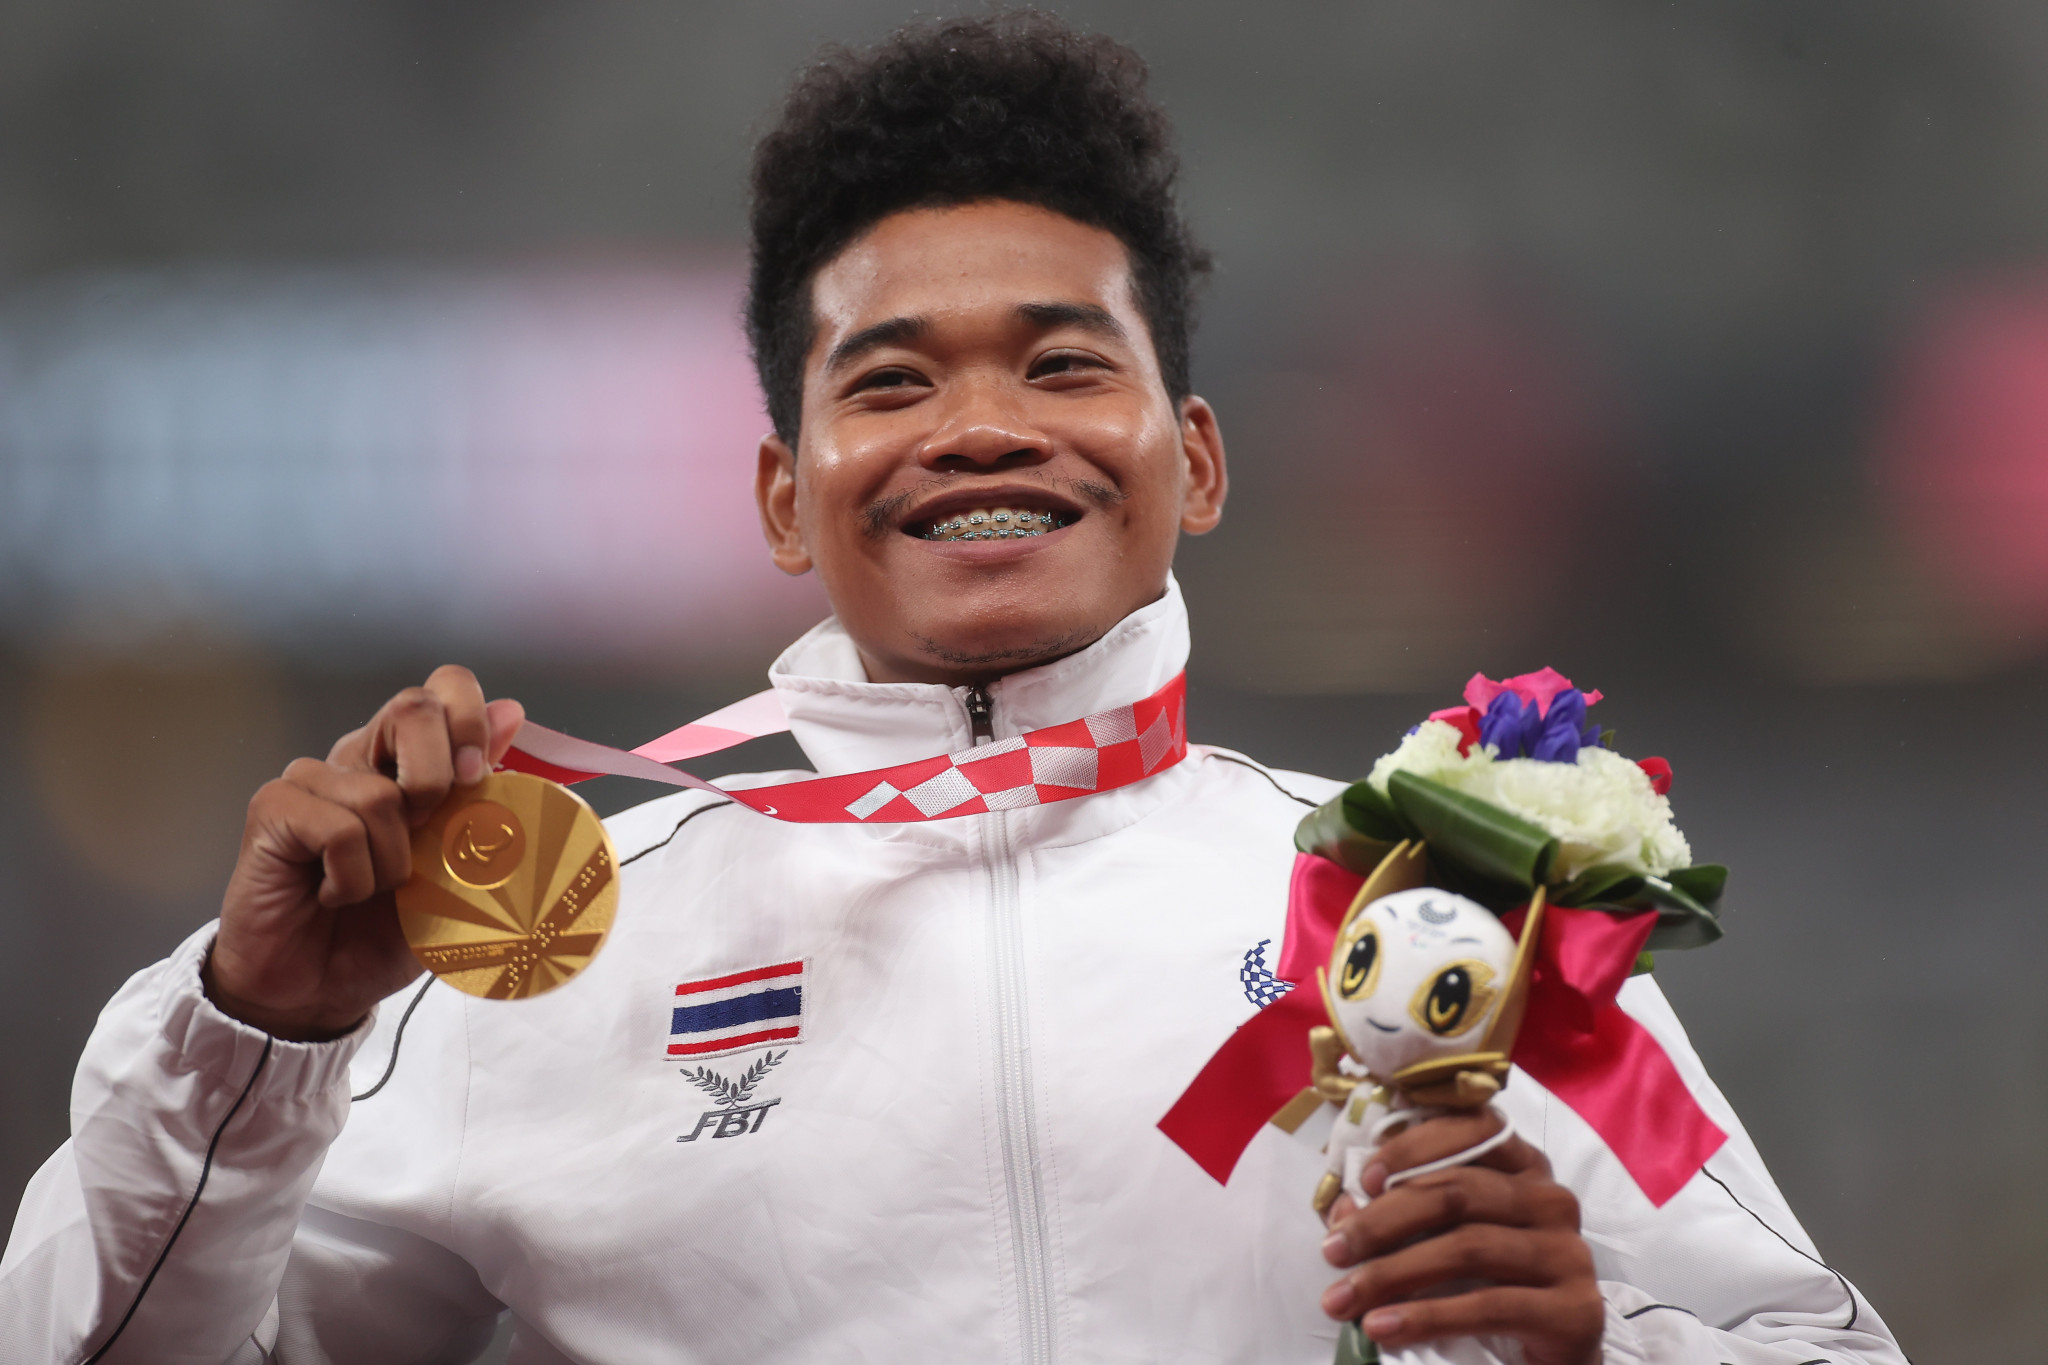 Pongsakorn Paeyo added another gold medal to his tally in Tokyo ©Getty Images